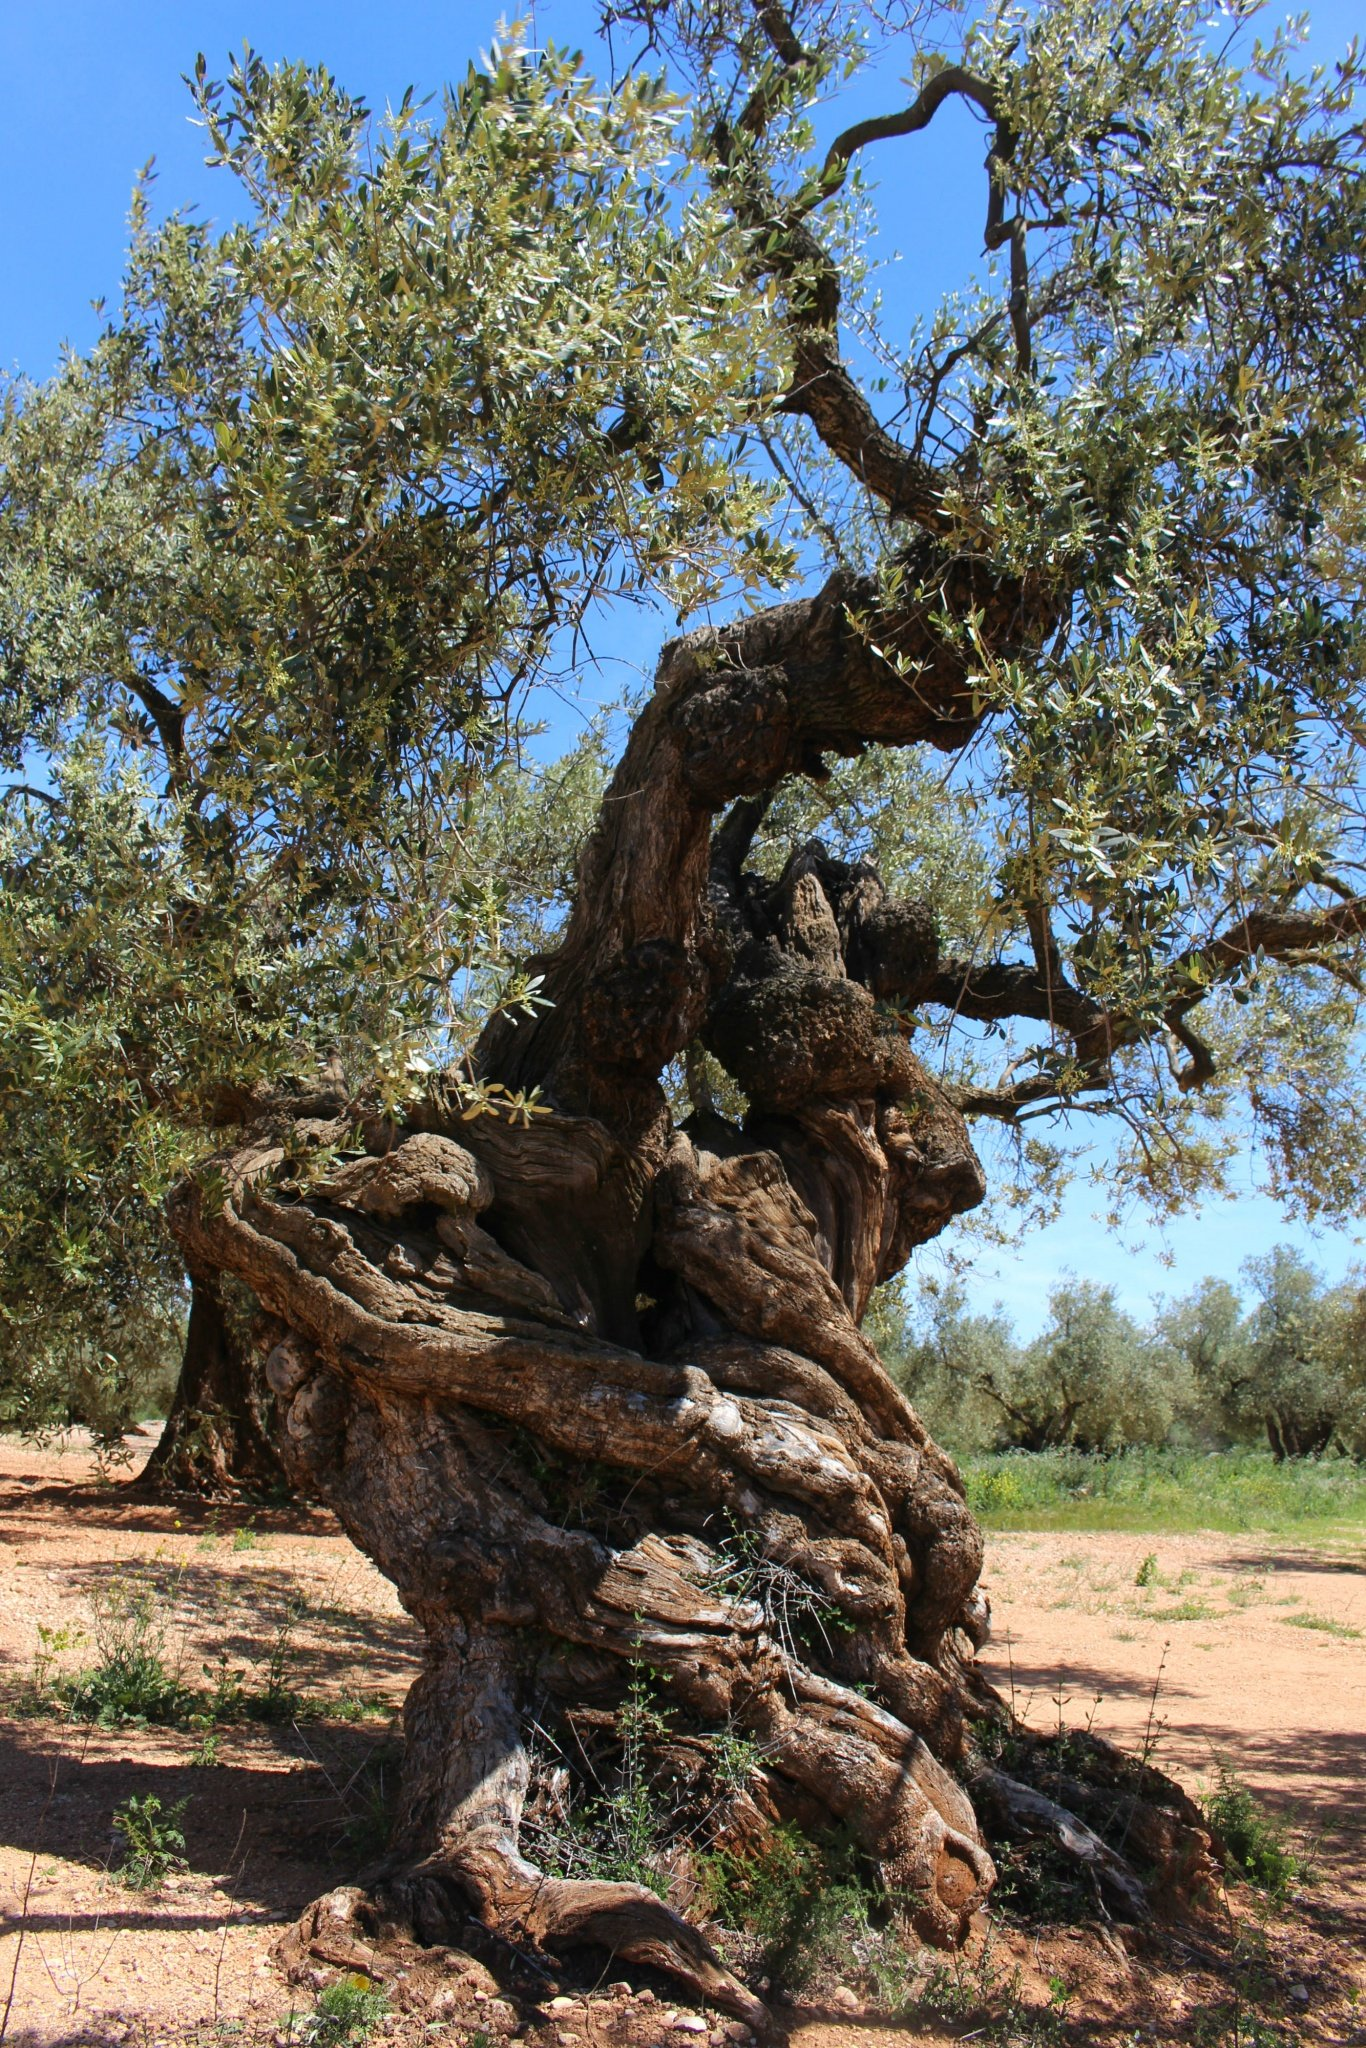 Millenary Olive Trees in Canet lo Roig, Castellon, Spain